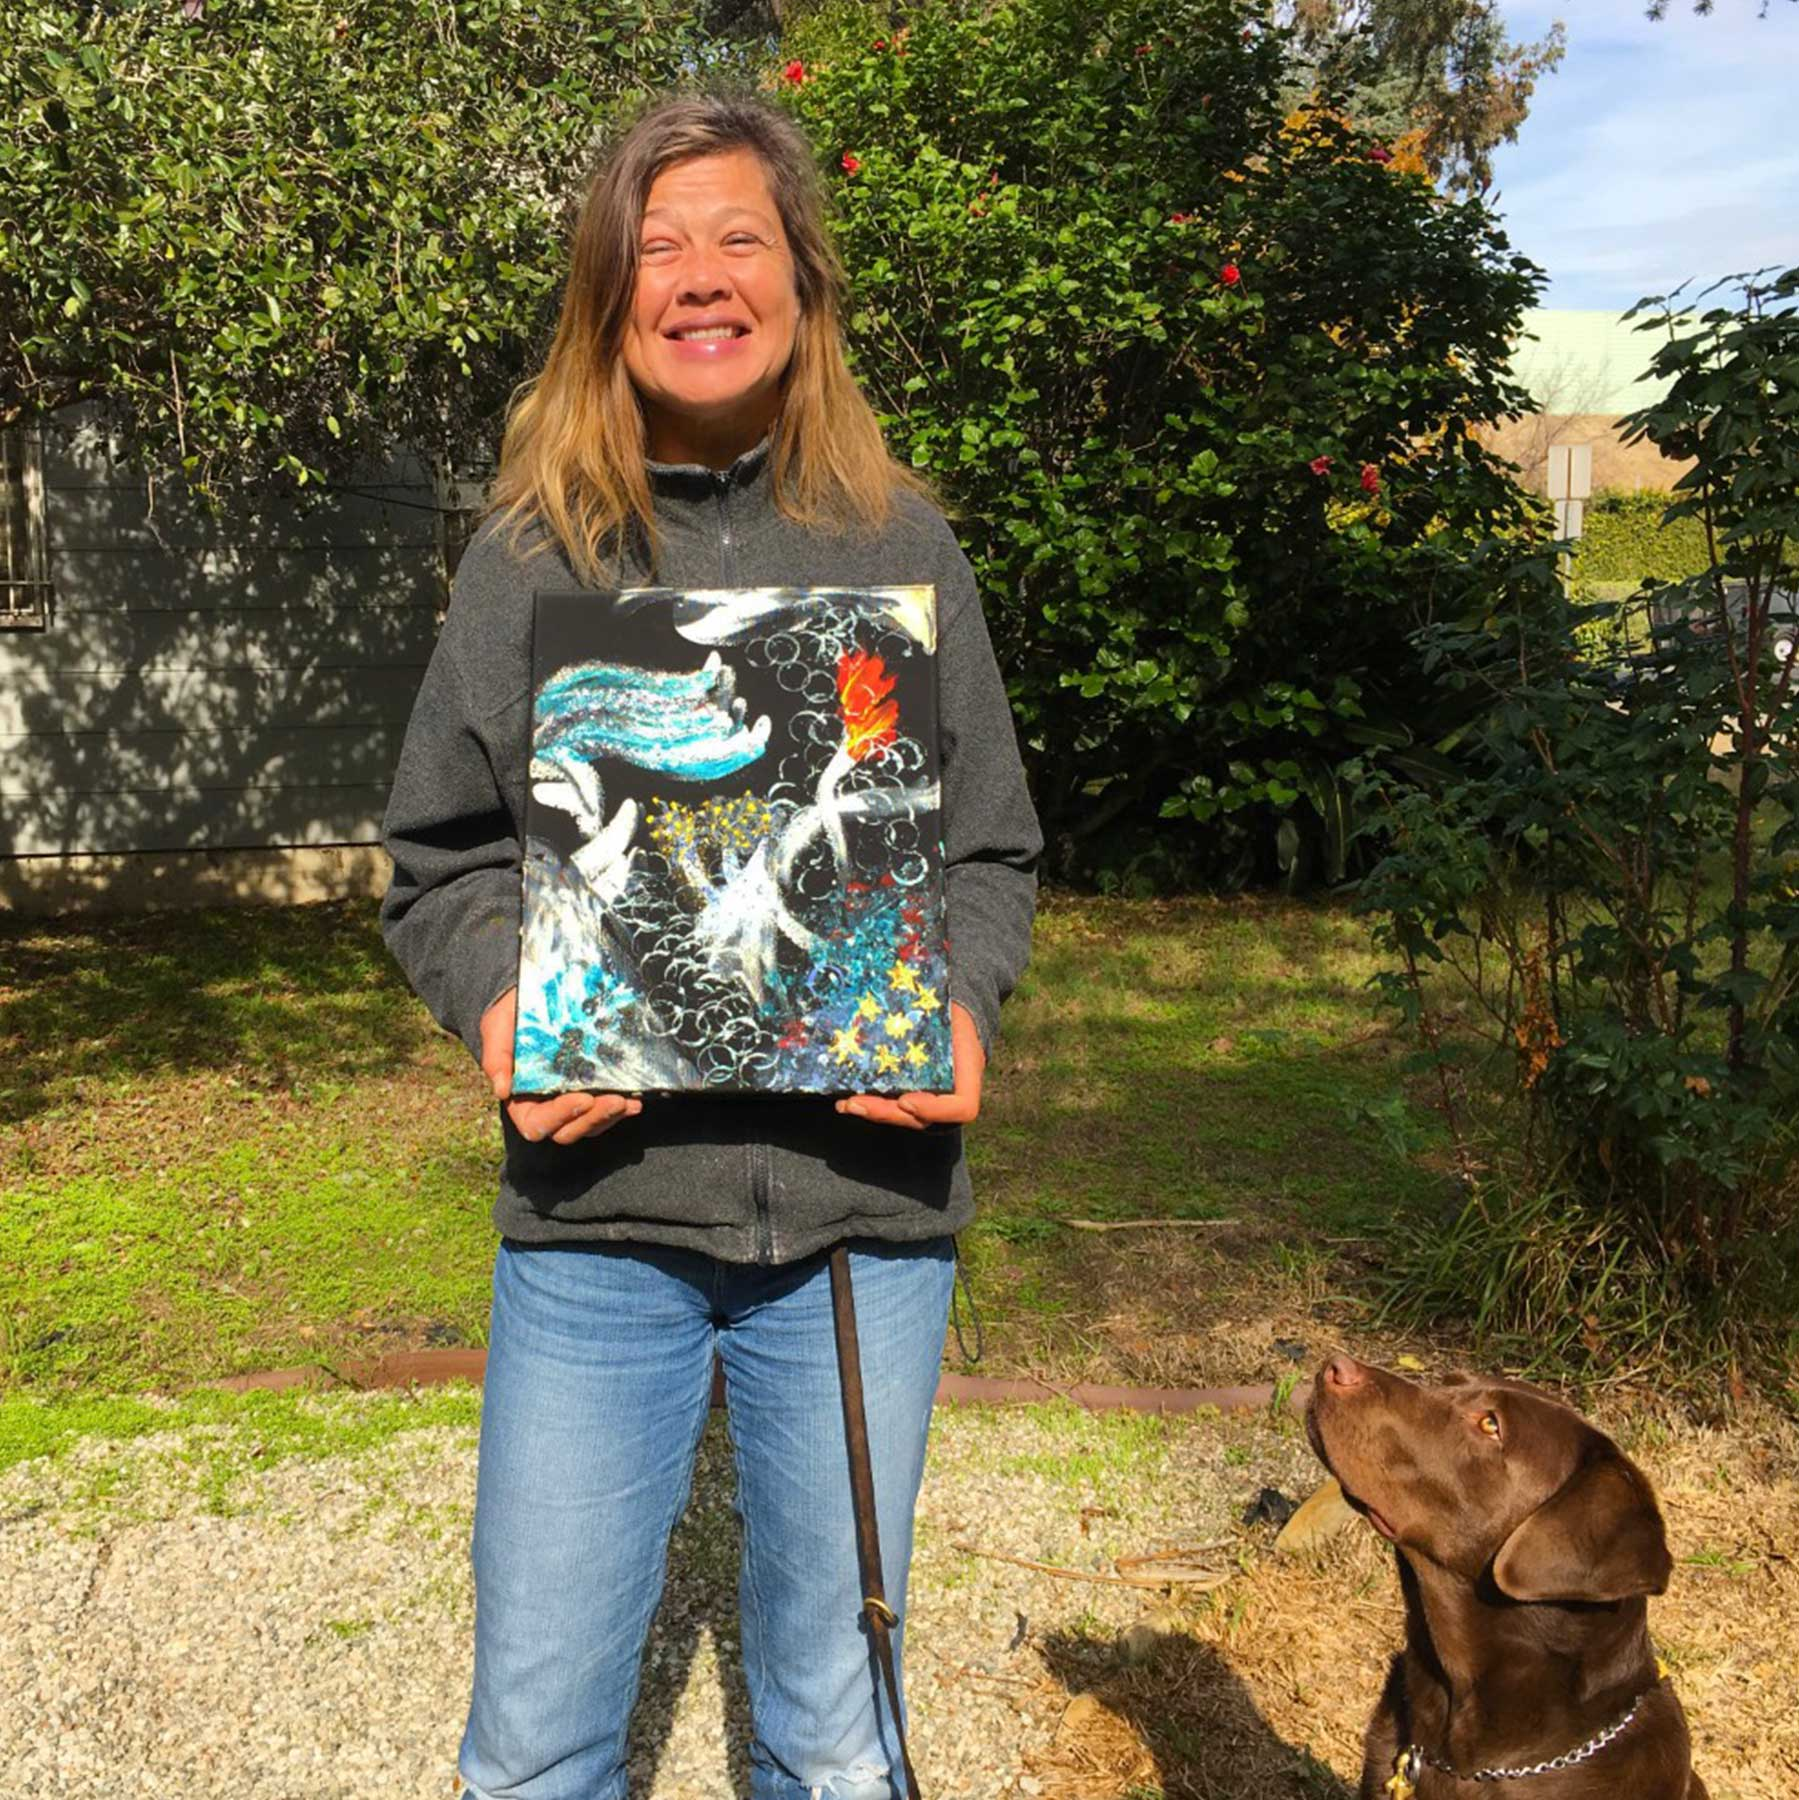 A photo of Laura Meddens holding one of her paintings-Diving Memories as her art critic Nugget - her faithful guide dog - looks it over.